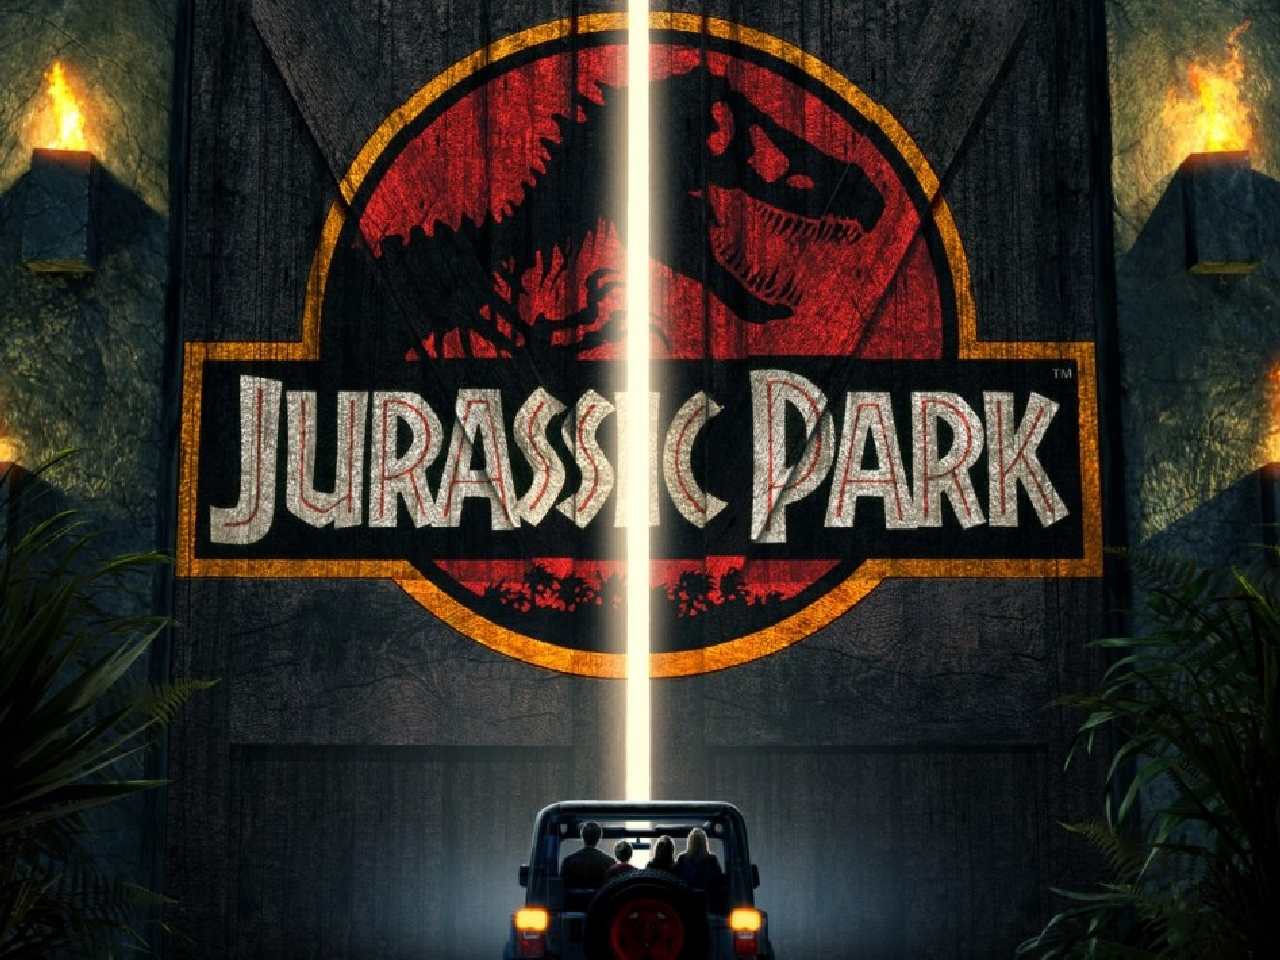 53 Jurassic Park HD Wallpapers | Backgrounds - Wallpaper Abyss